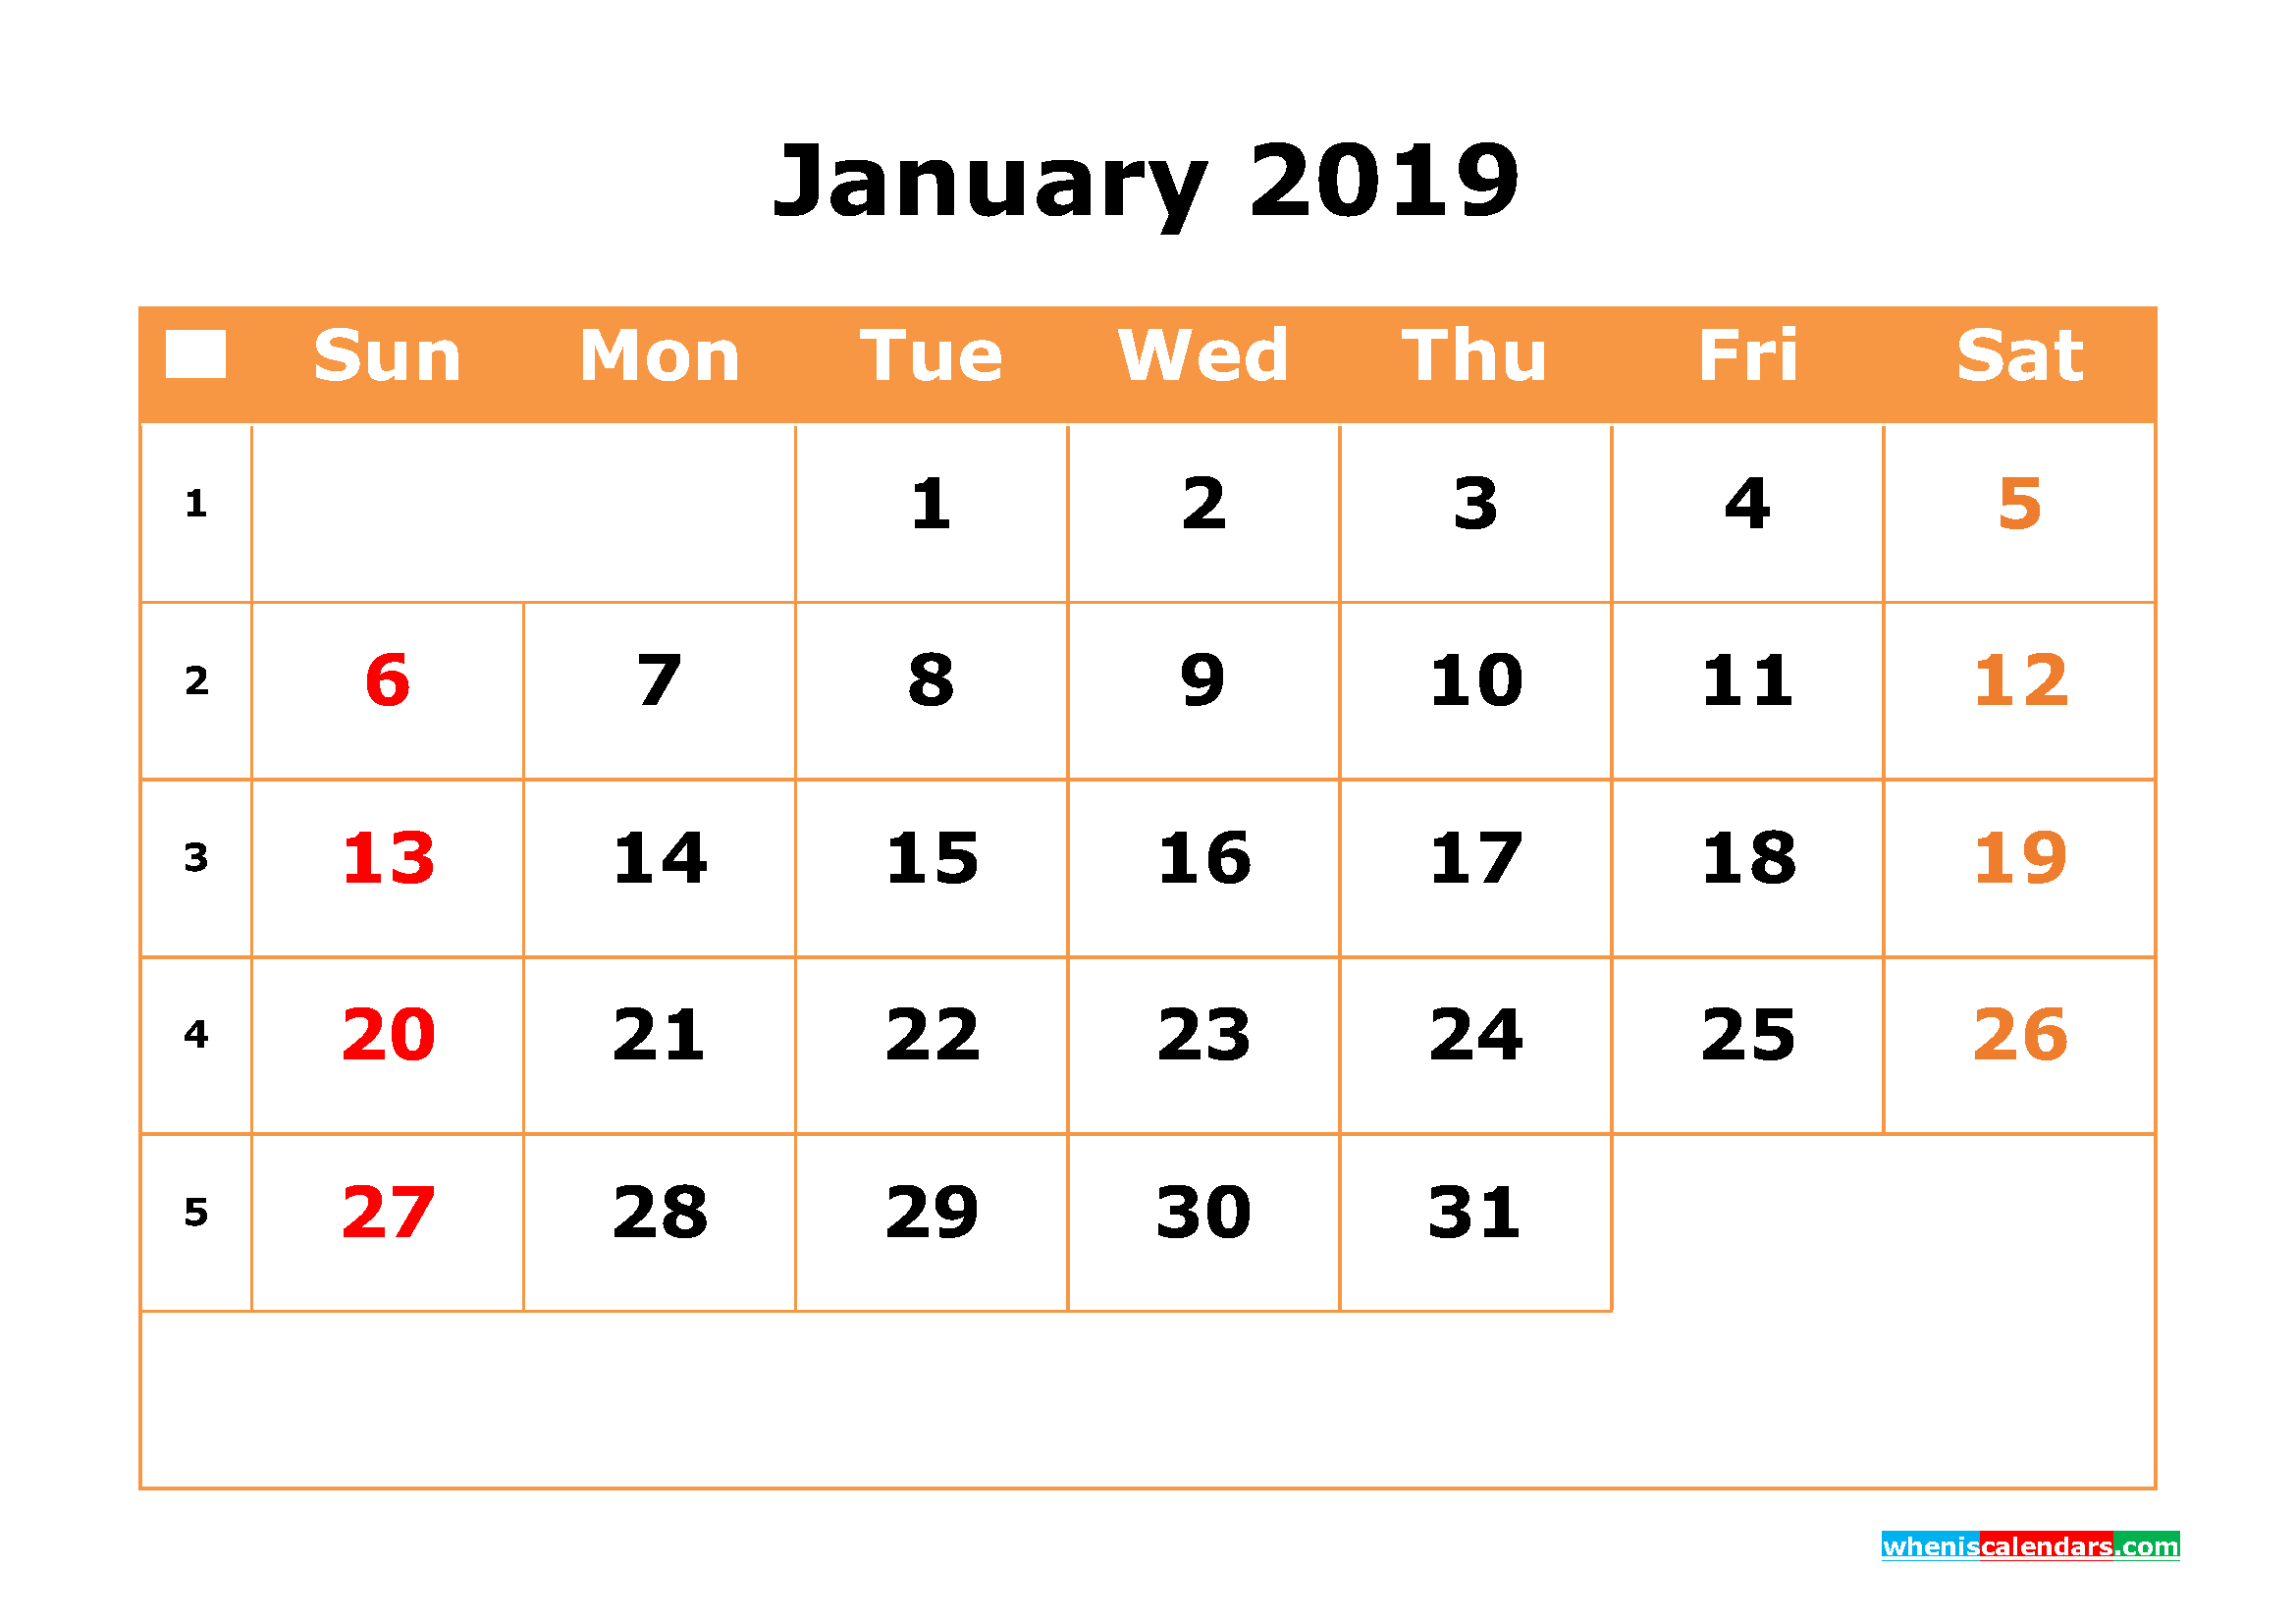 January 2019 Calendar with Week Numbers Printable